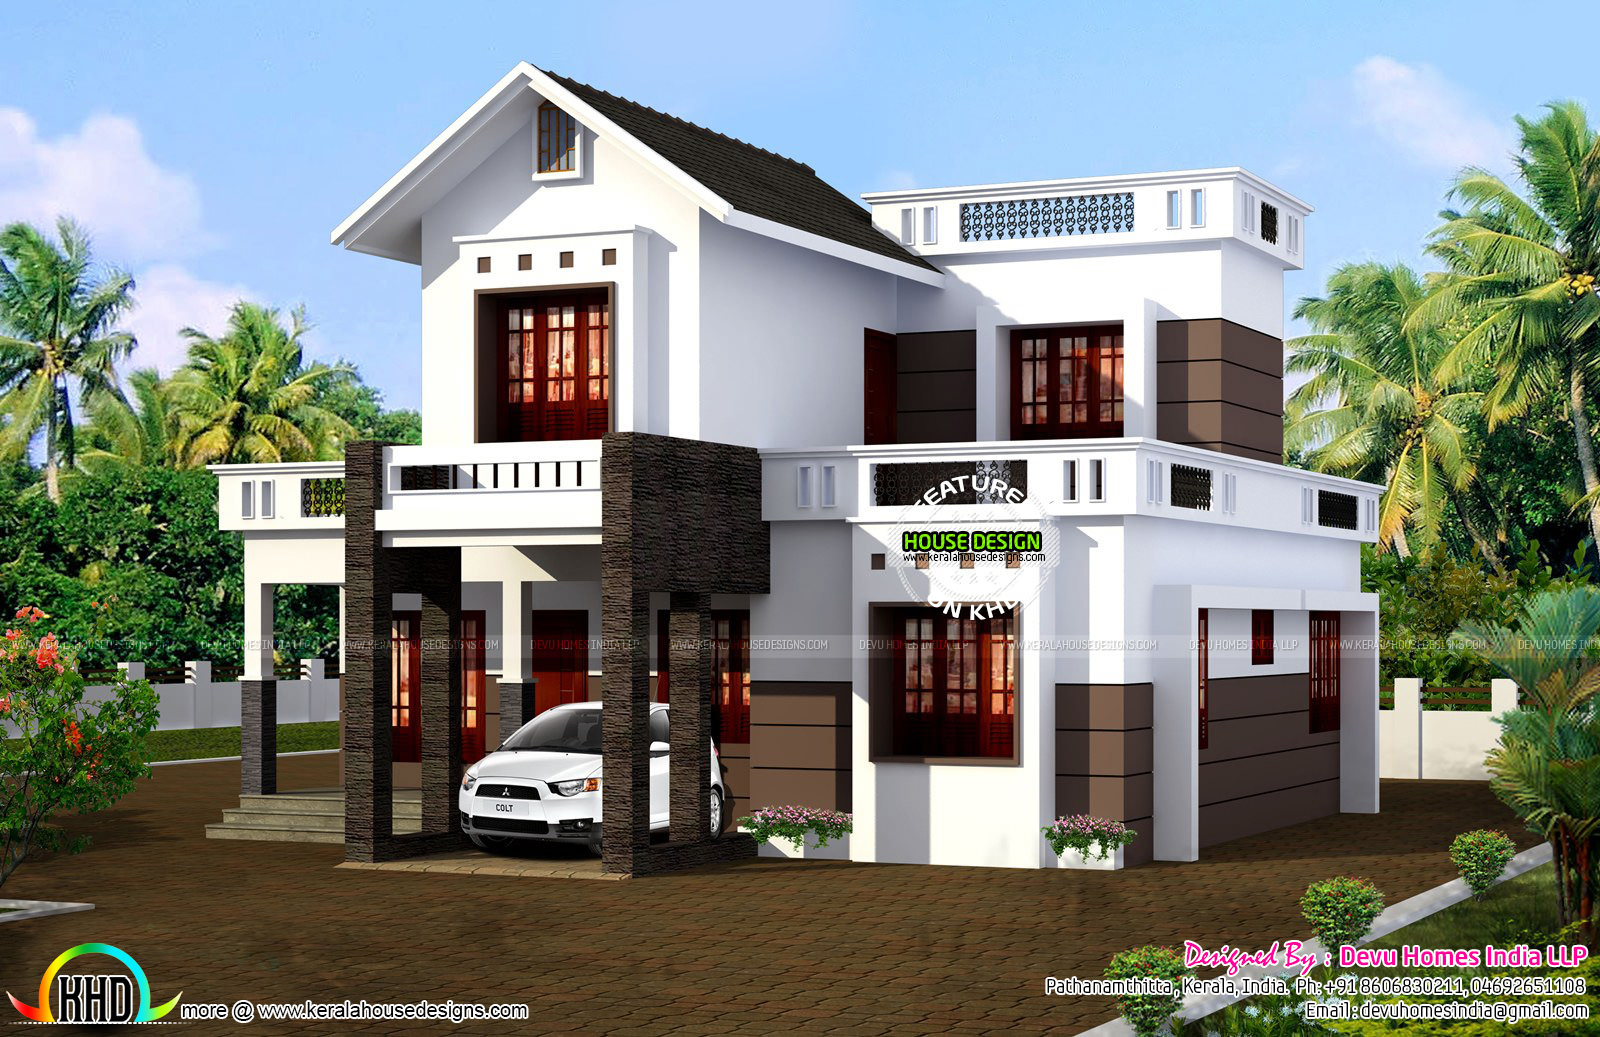 Simple 1524 sq ft house plan kerala home design and for Simple contemporary house